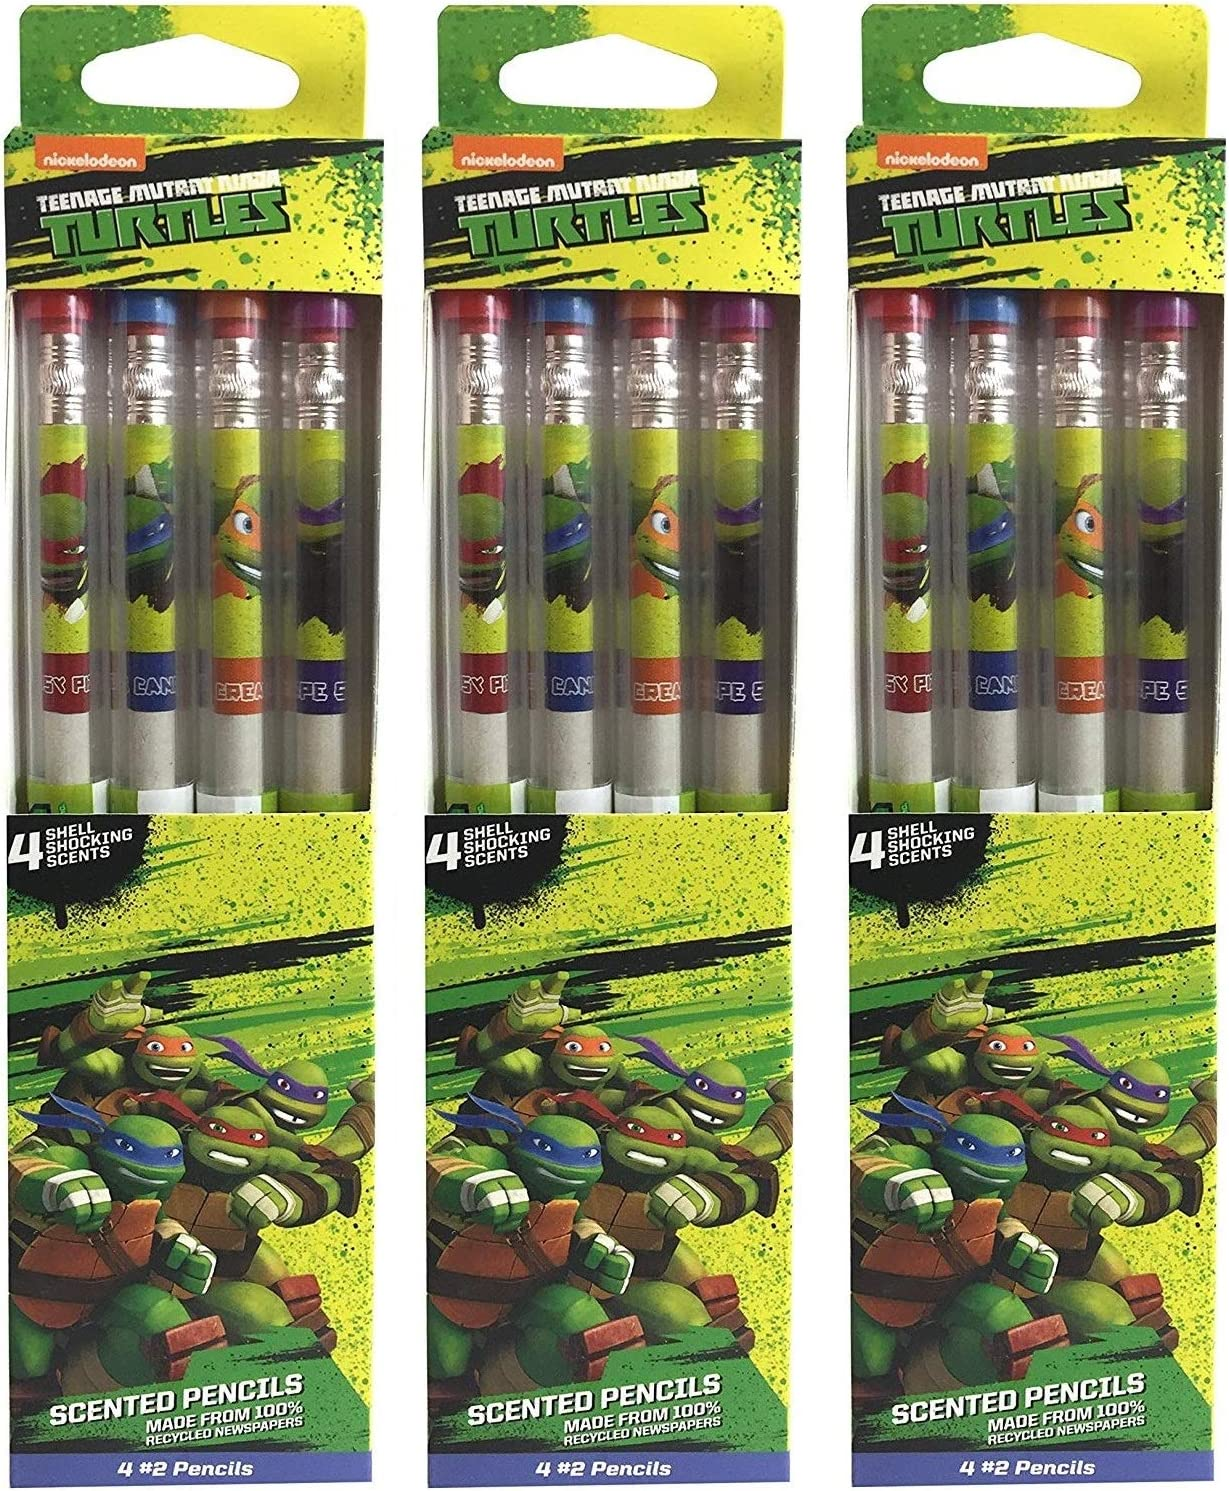 Teenage Mutant Ninja Turtles Smencils (12pk of #2 Scented Pencils)